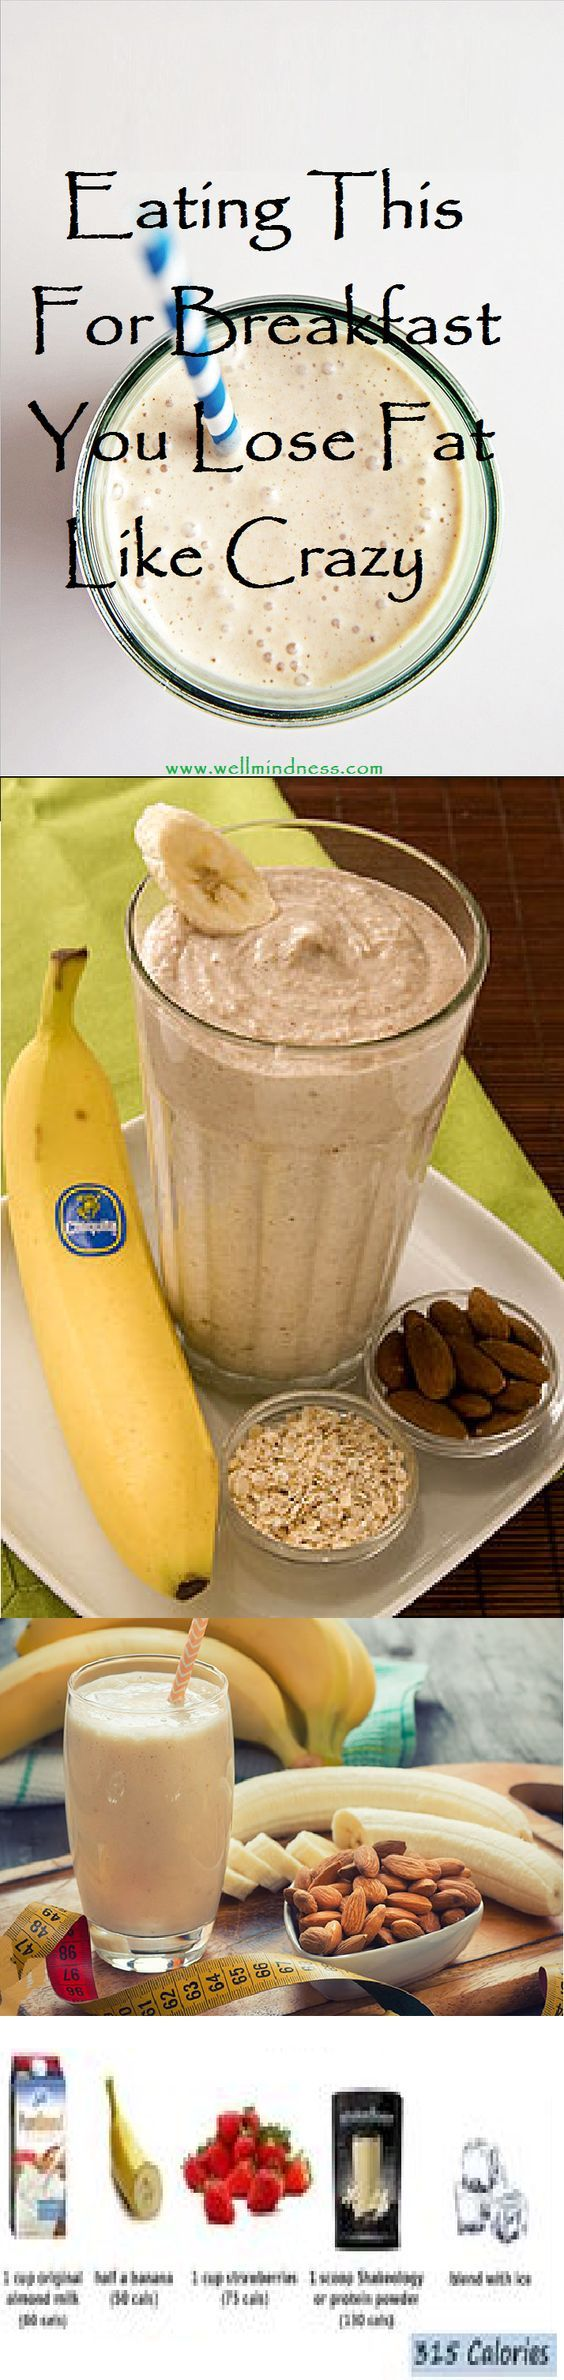 23 Protein Shake Recipes to Make You Lean & Strong Excess body fat leads to the development of heart disease, diabetes, hypertension, fatty liver, and increases the risk of developing cancer.